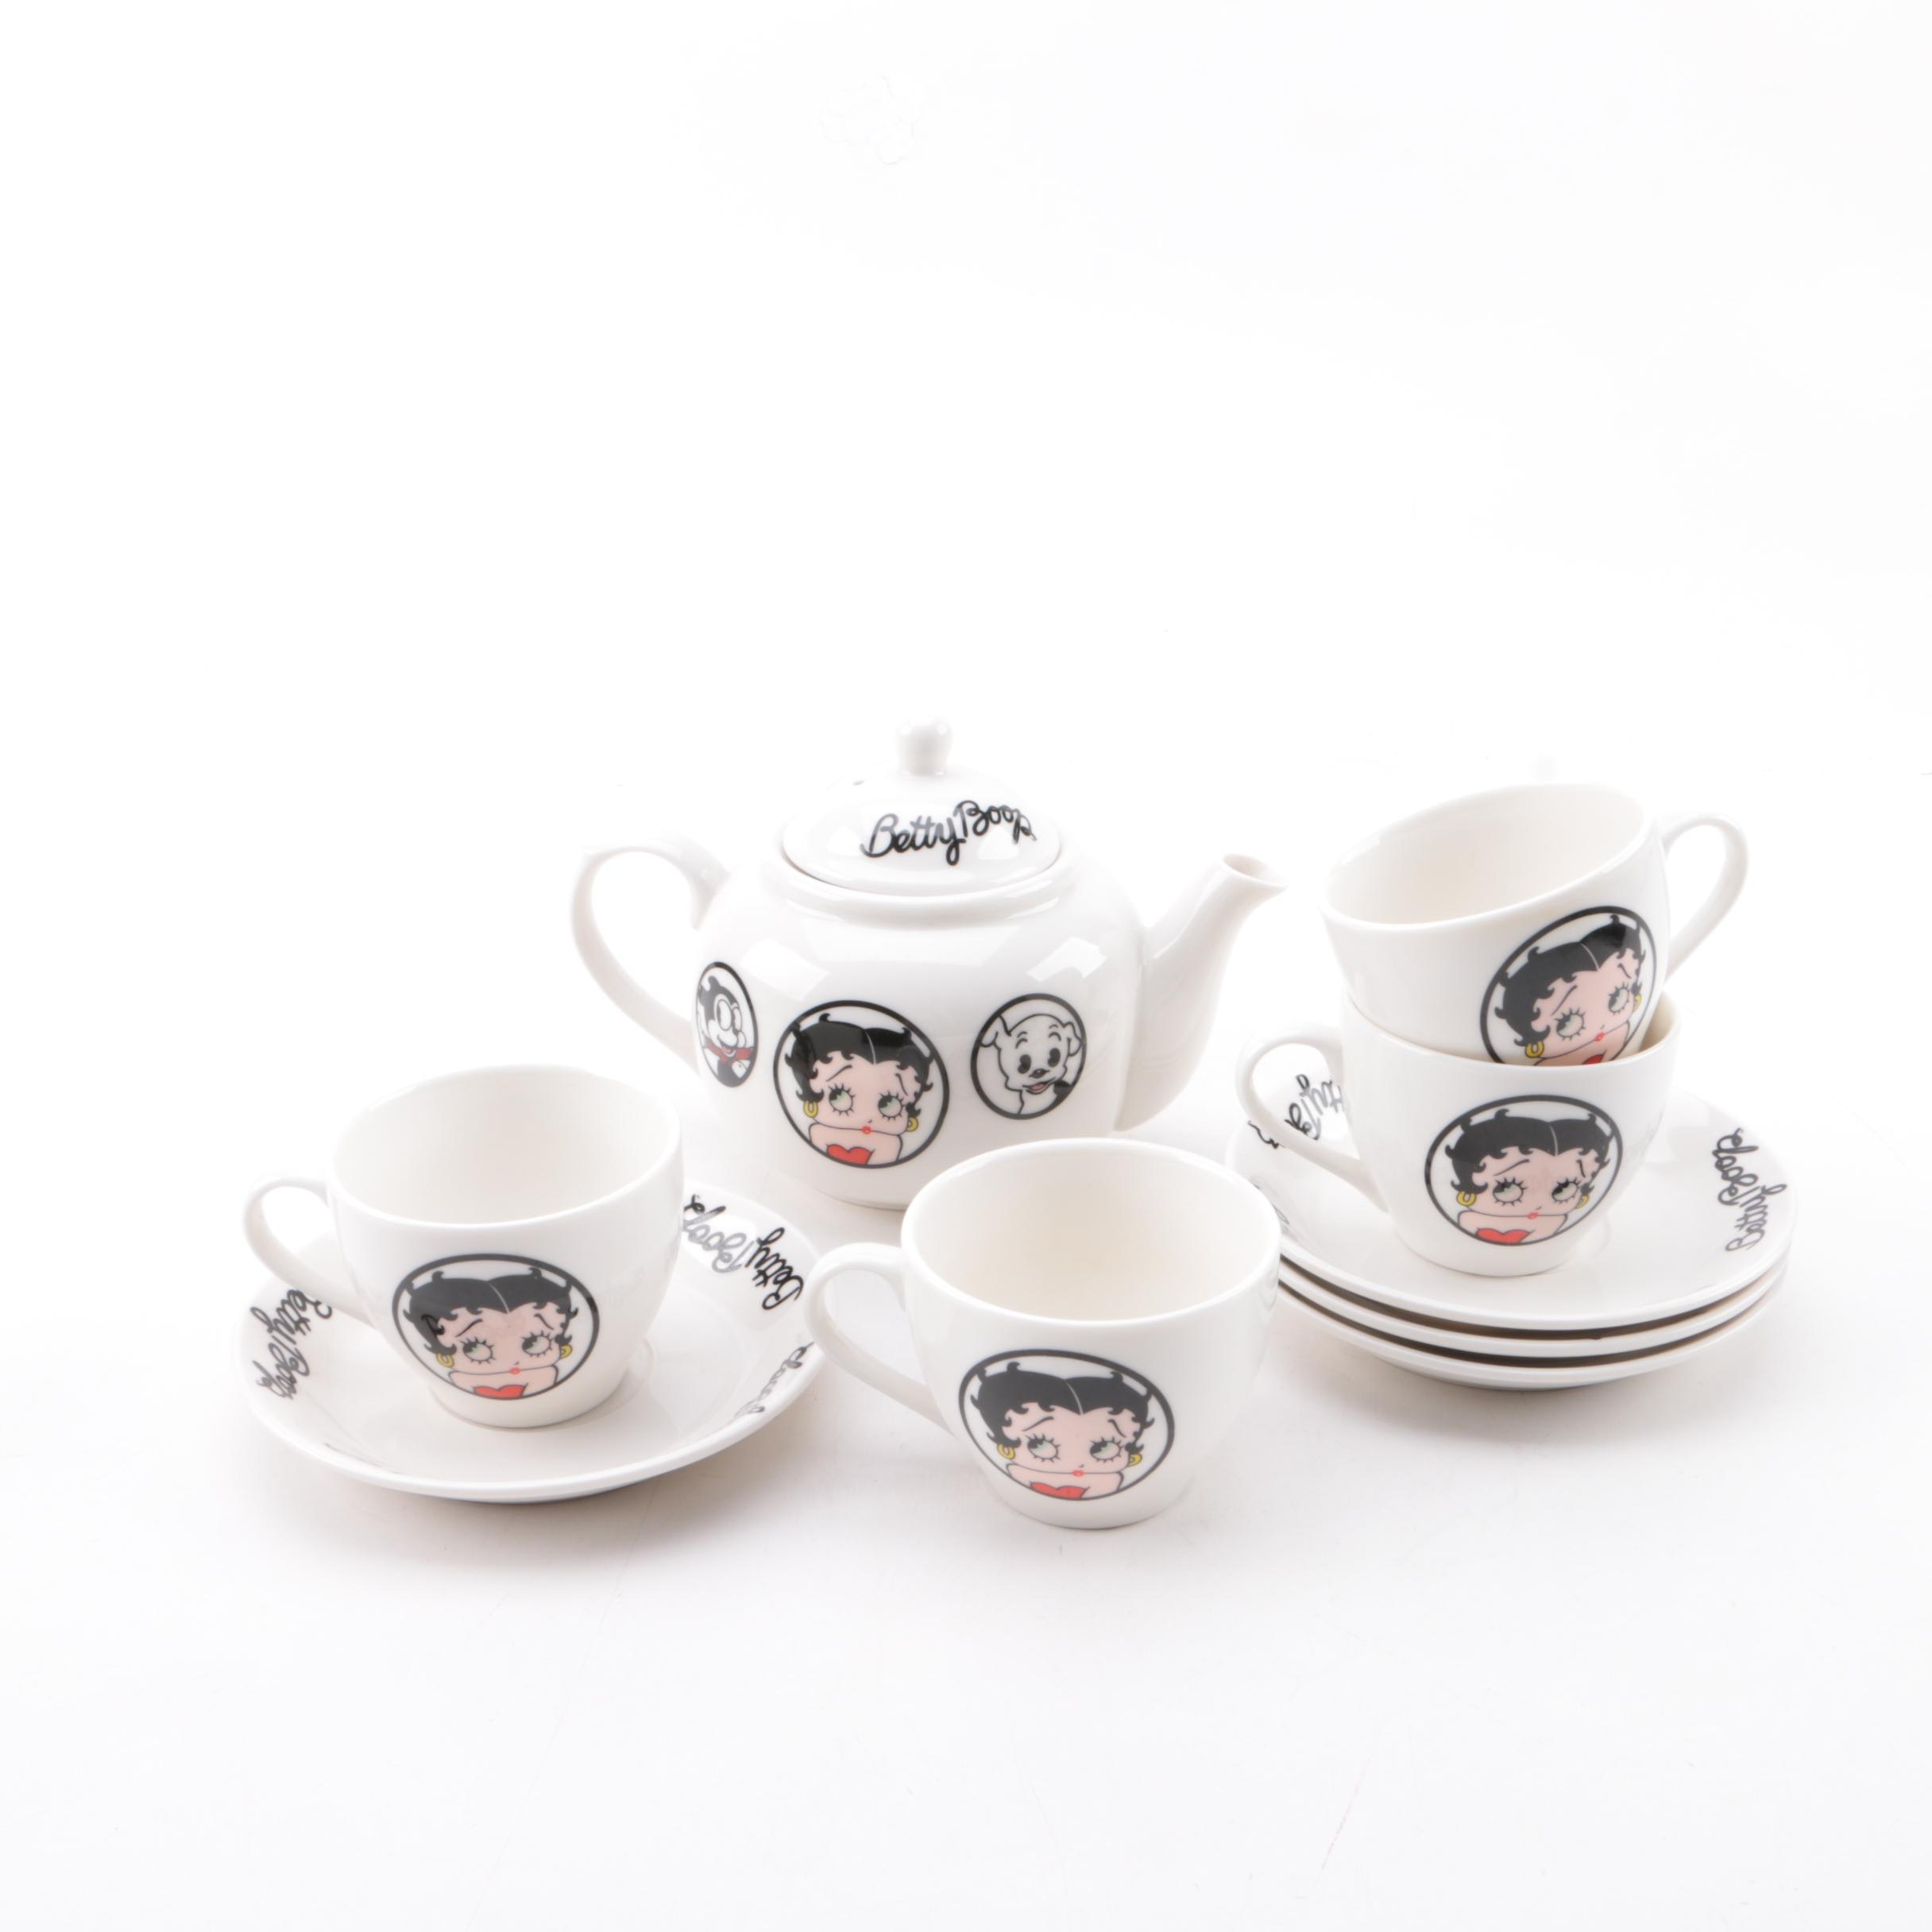 "Bright Ideas ""Betty Boop"" Tea Service"